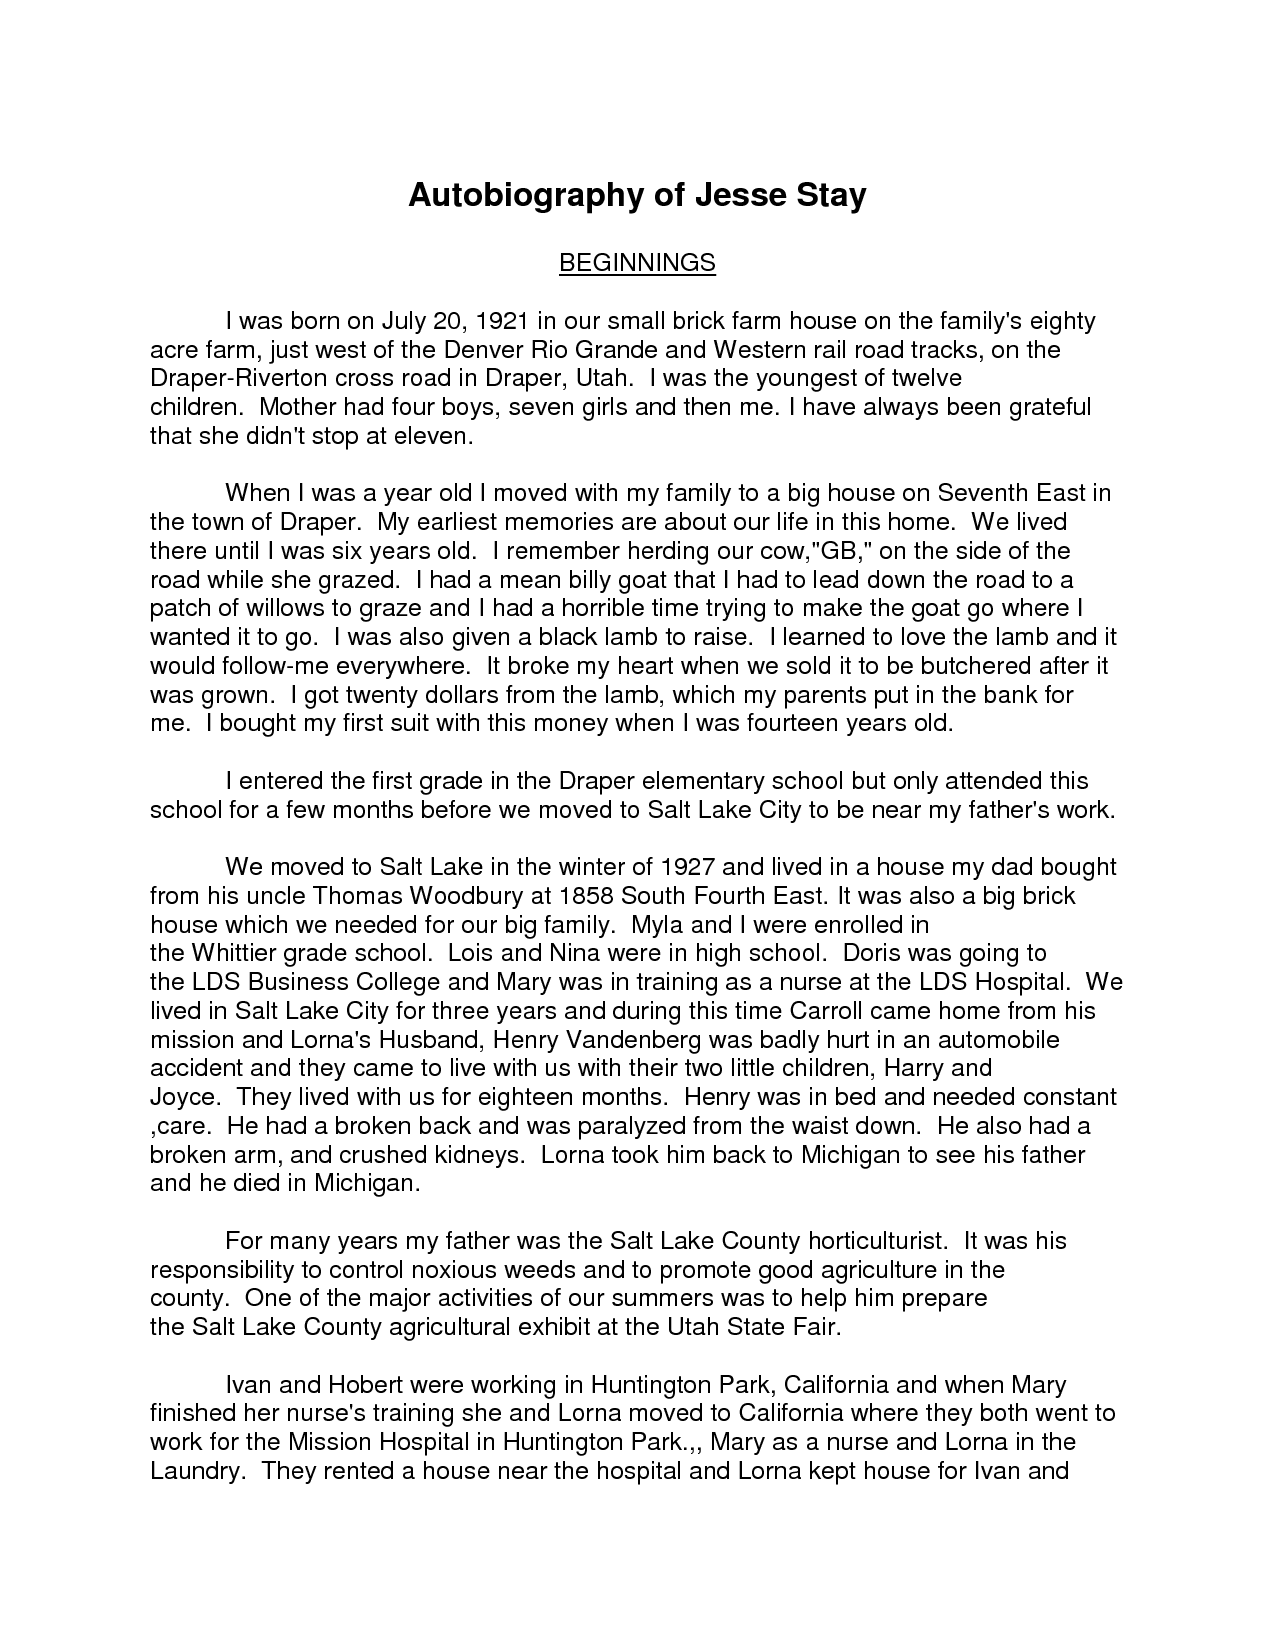 021 Essay Example How To Write Autobiography On Yourself Goal Blockety Co Great Examples High School Of My Samples Good Therefore S Introductions Expectations Scholarship Personal Gatsby Formidable About Tagalog A Narrative Introduction Full